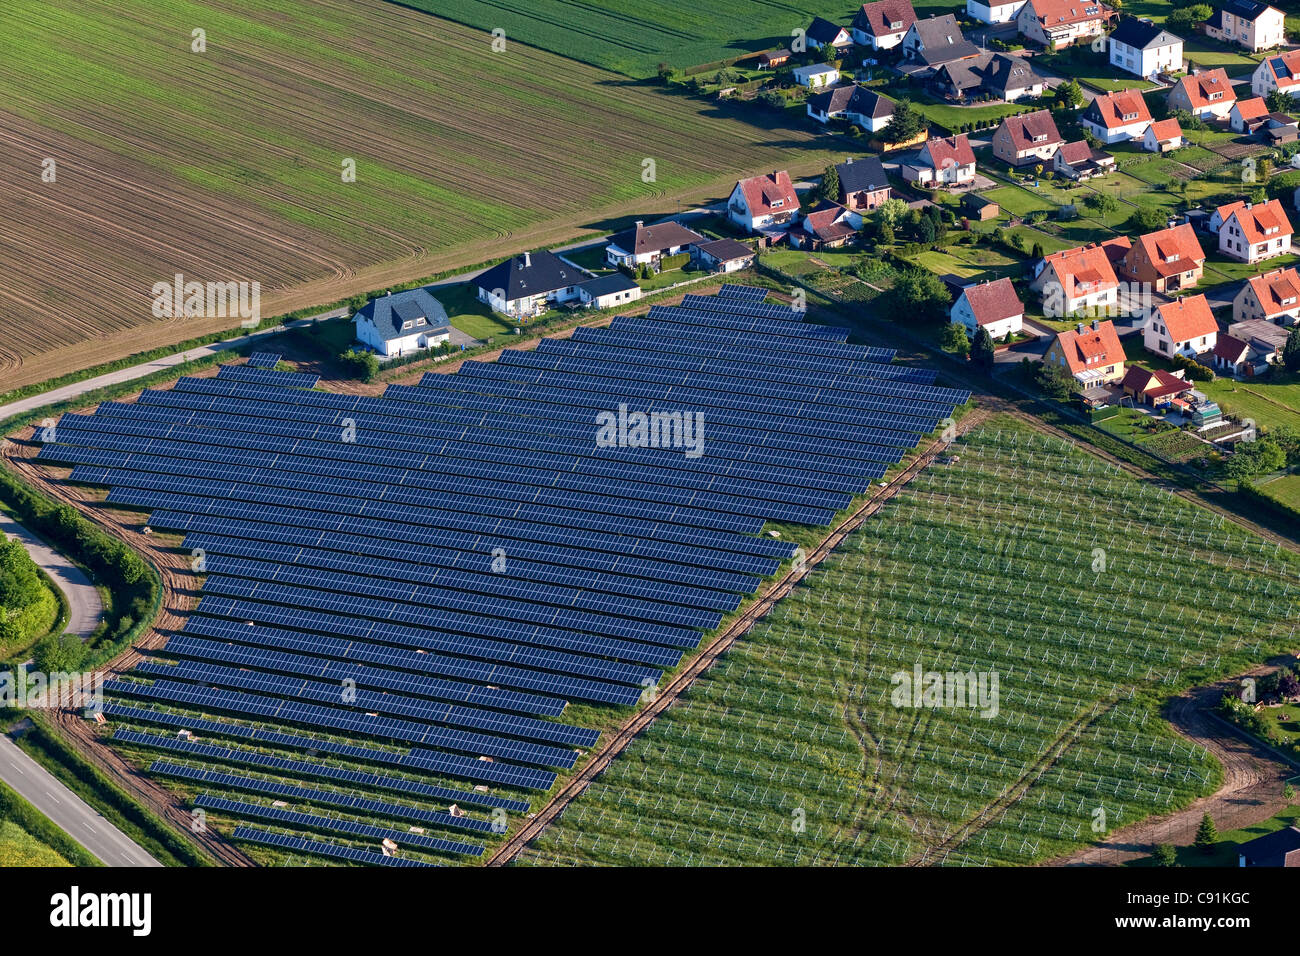 Aerial view of solar panels near Holzminden, housing settlement, Lower Saxony, Germany - Stock Image